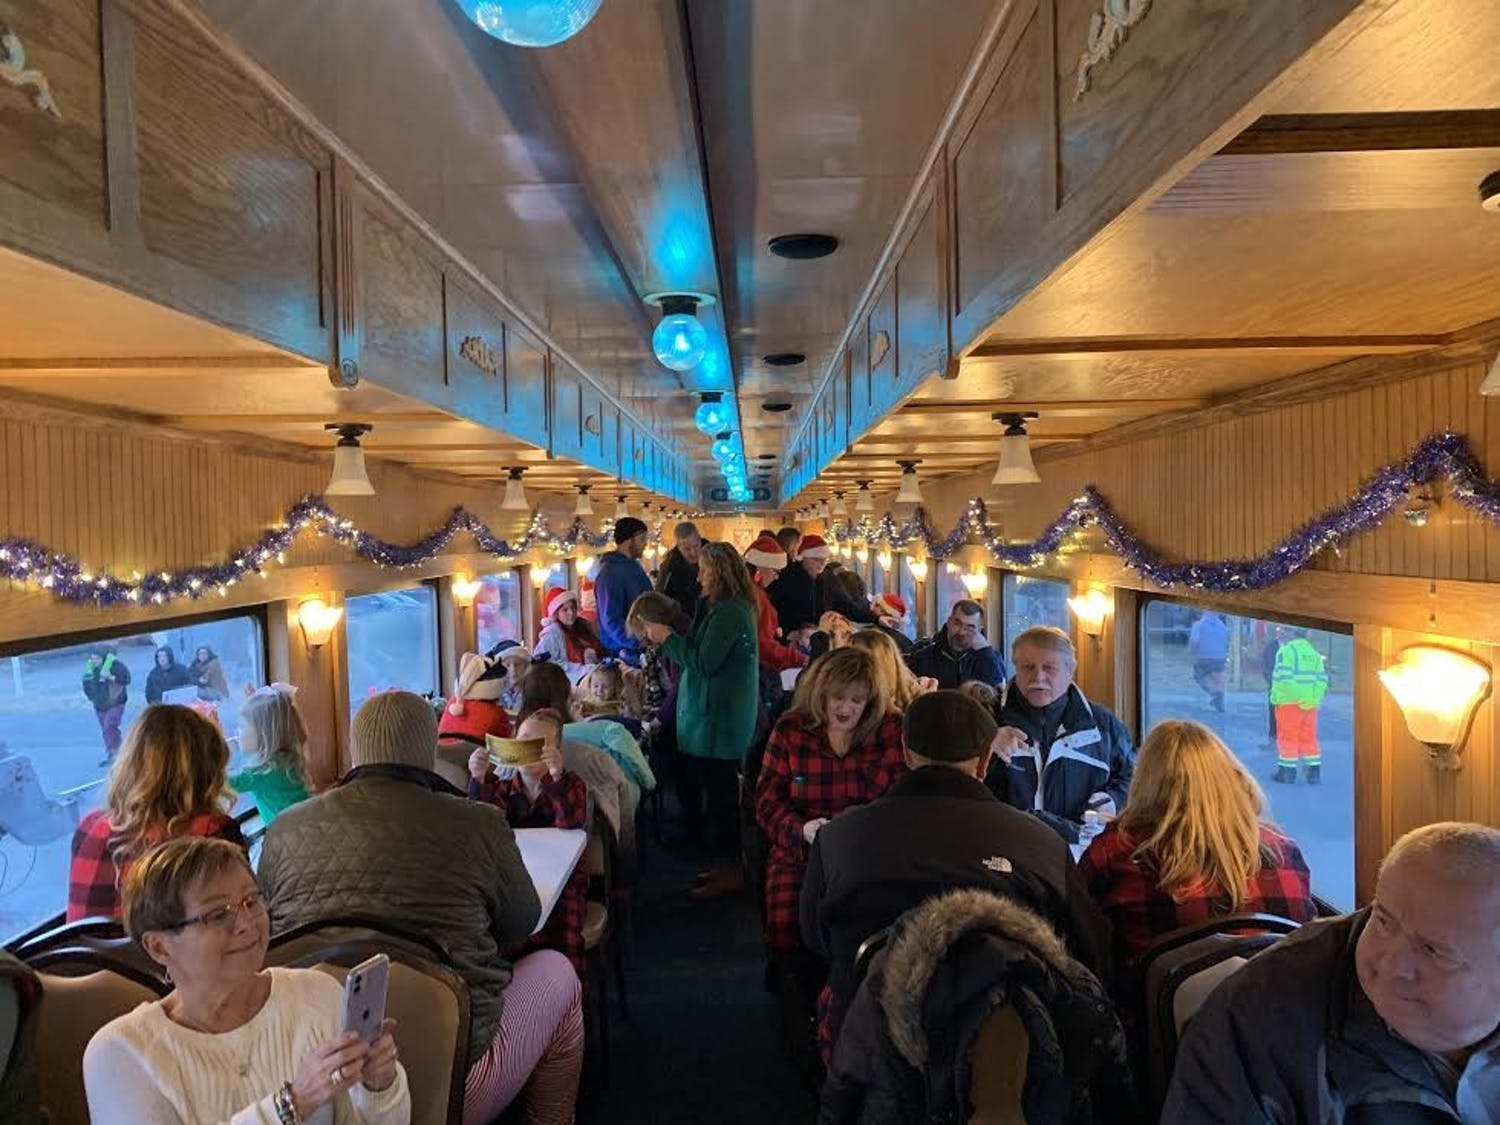 Passengers take their seats and eagerly await the train's departure to the North Pole.